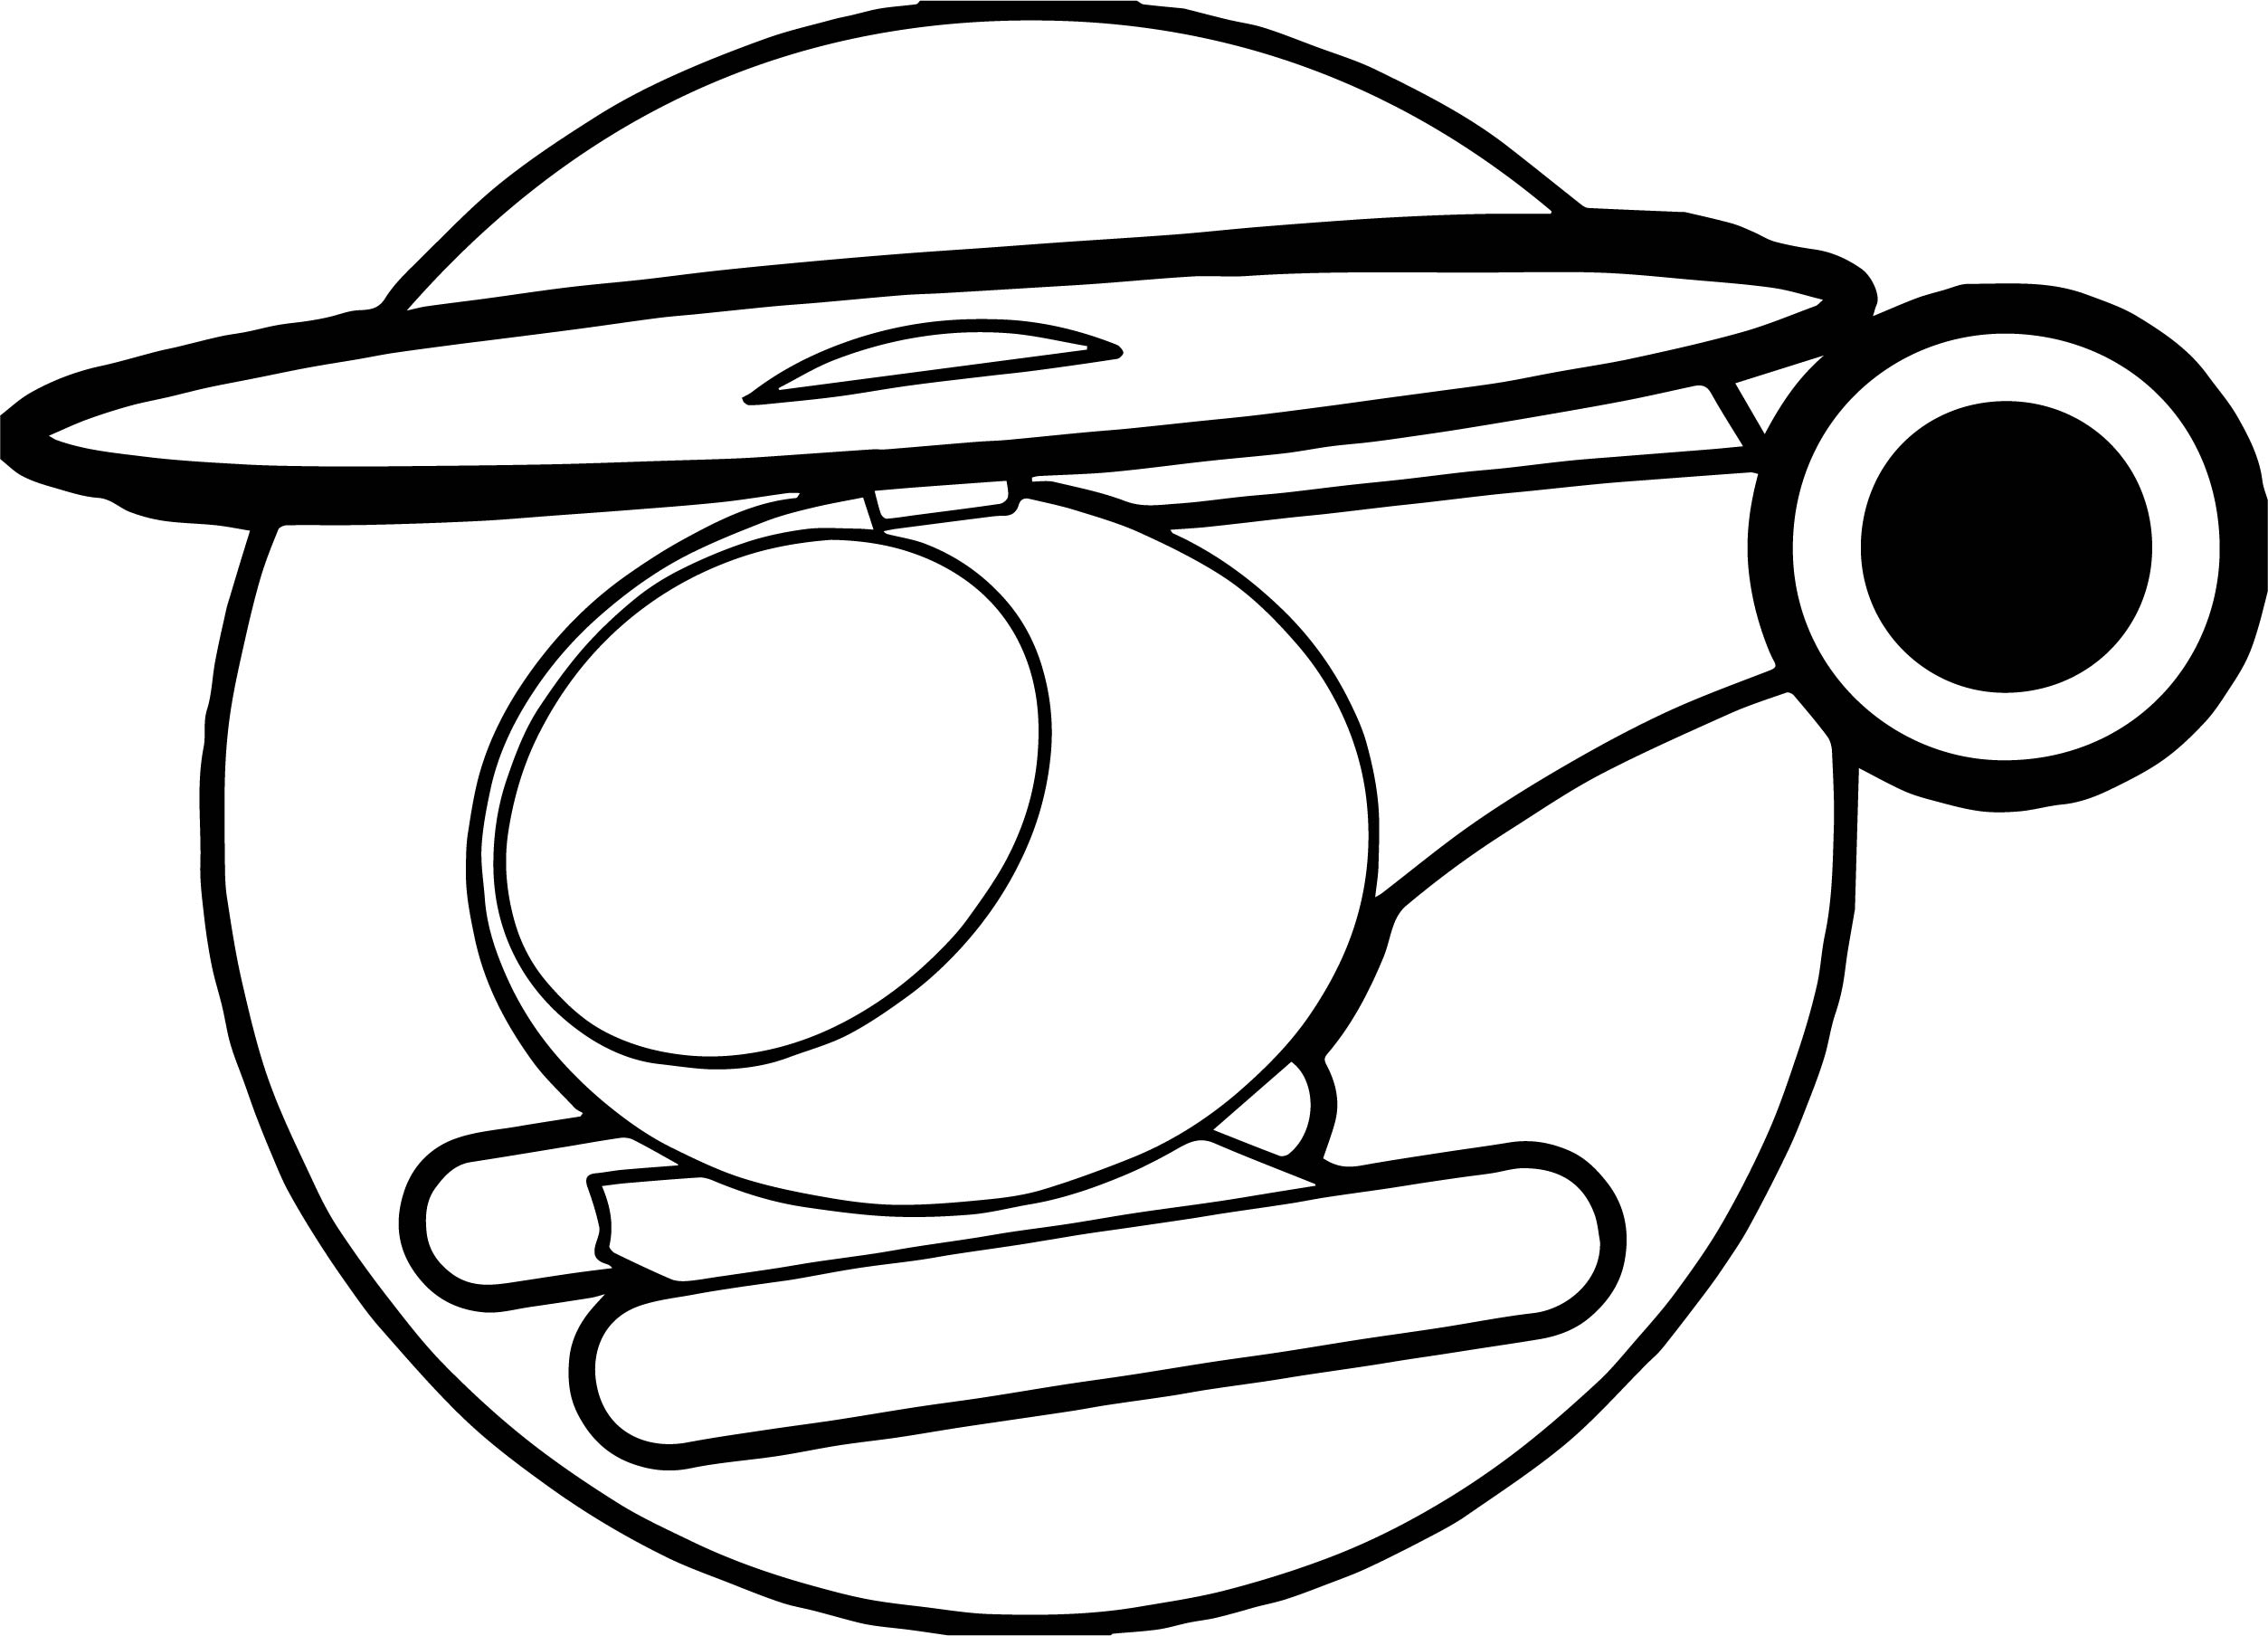 Helicopter Icon Coloring Page